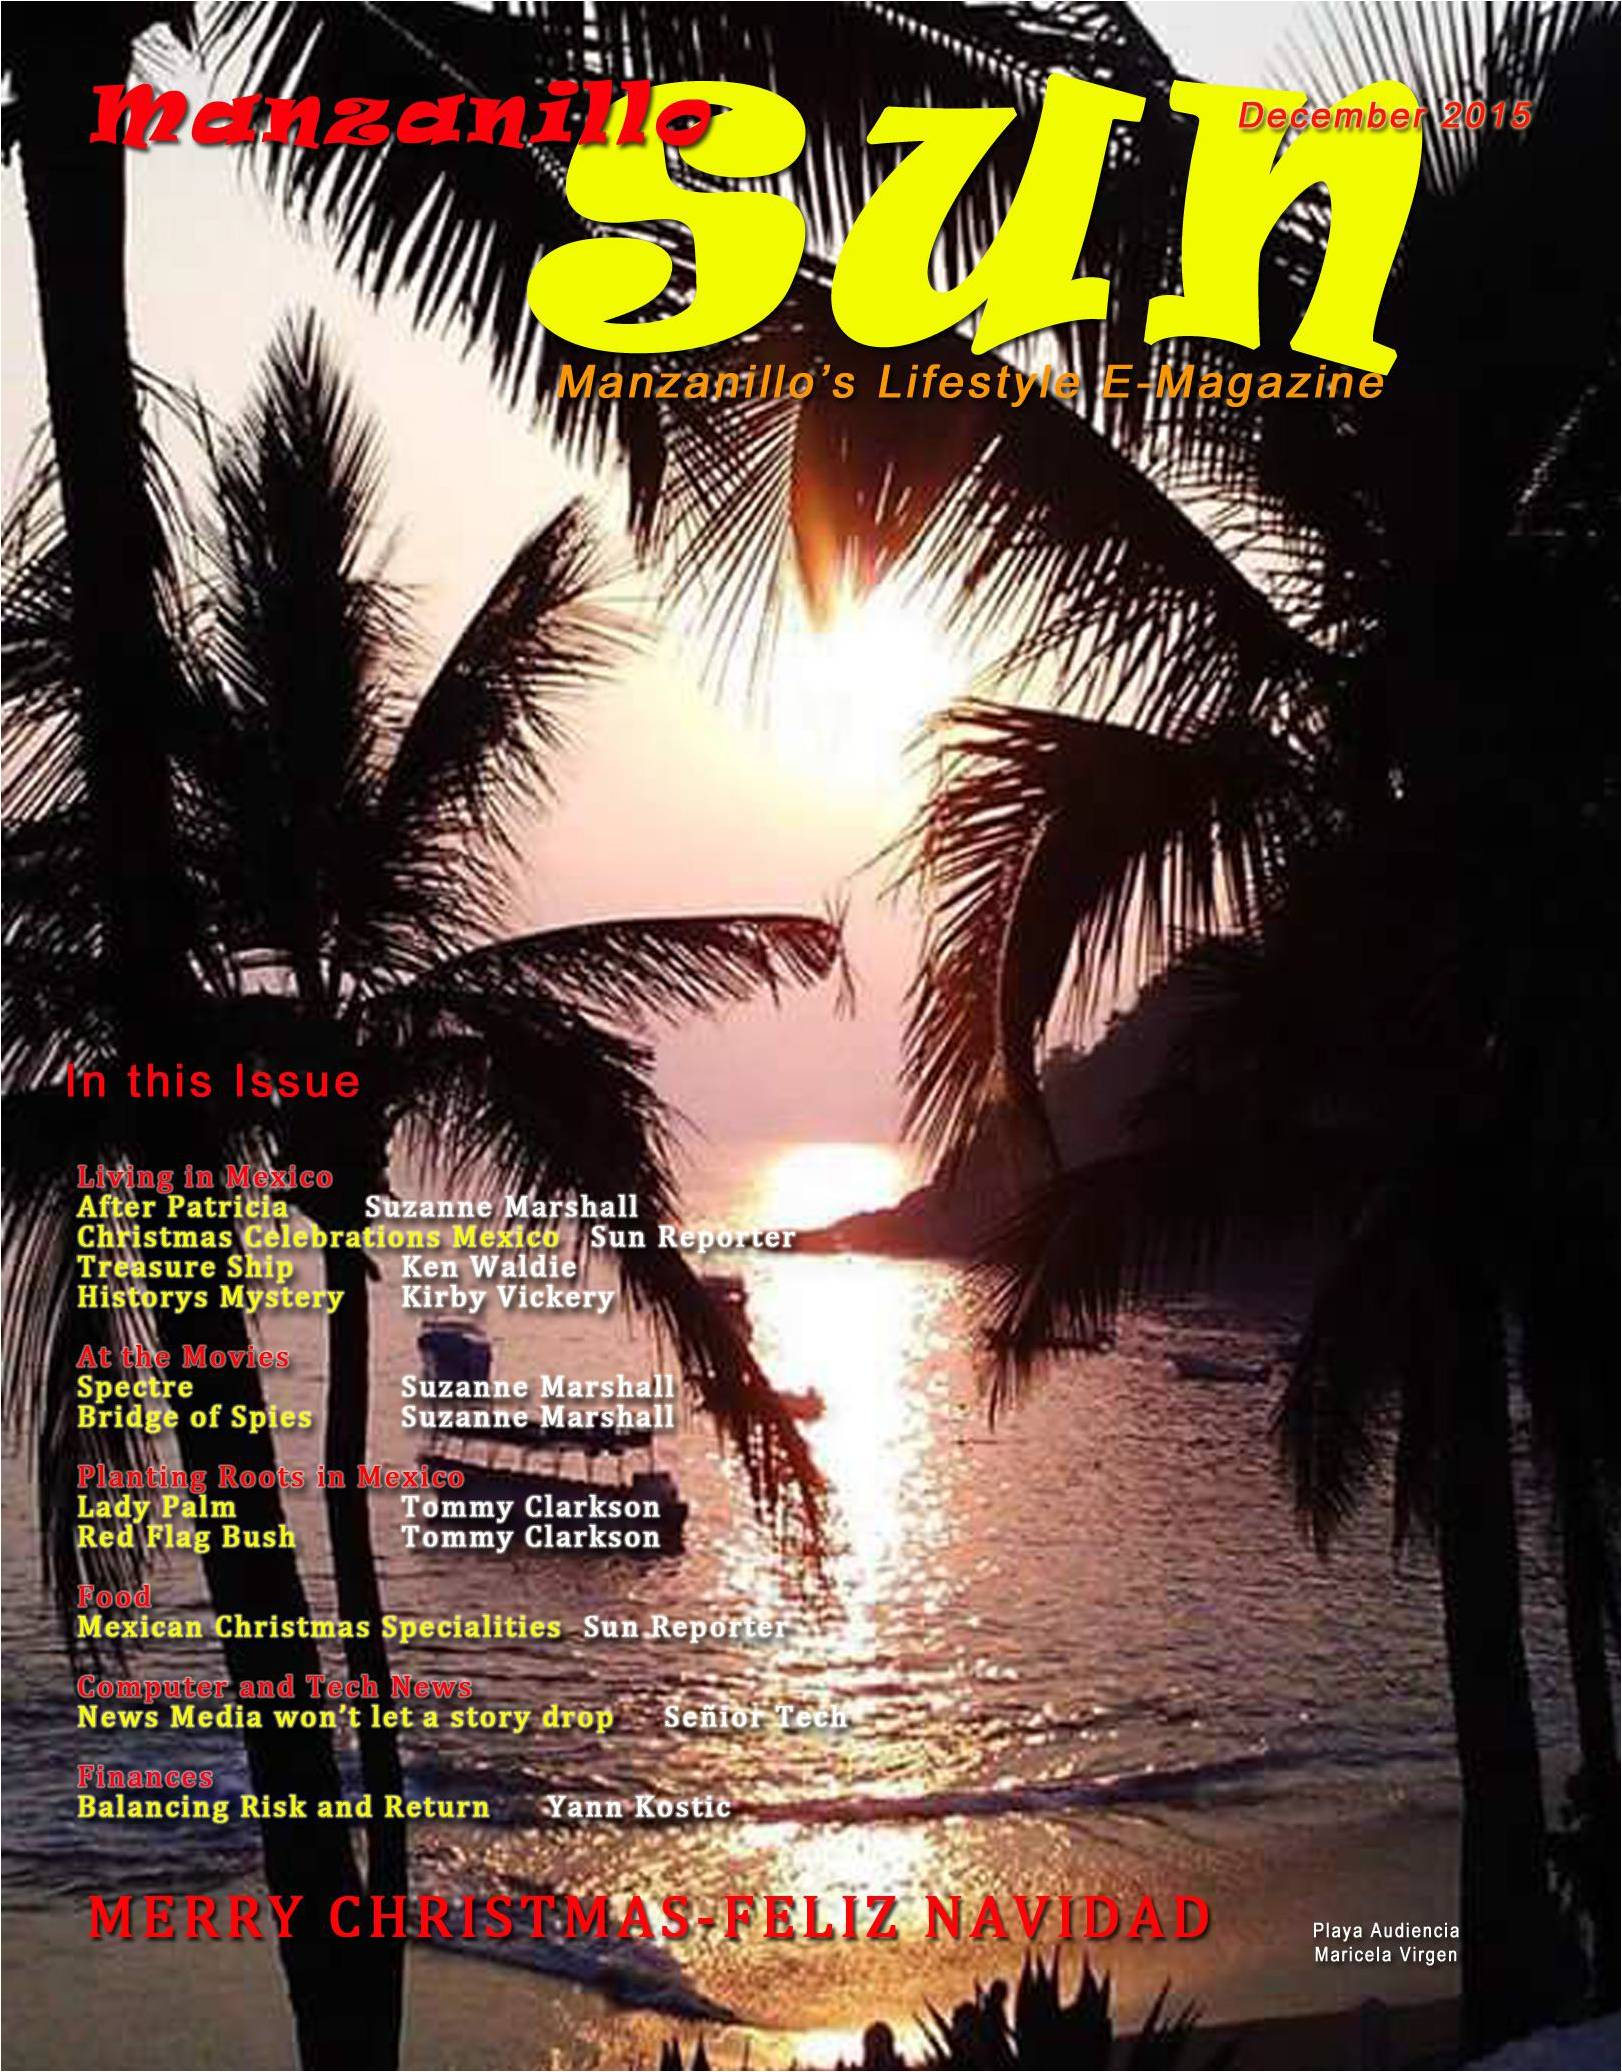 Manzanillo Sun e-magazine cover December 2015